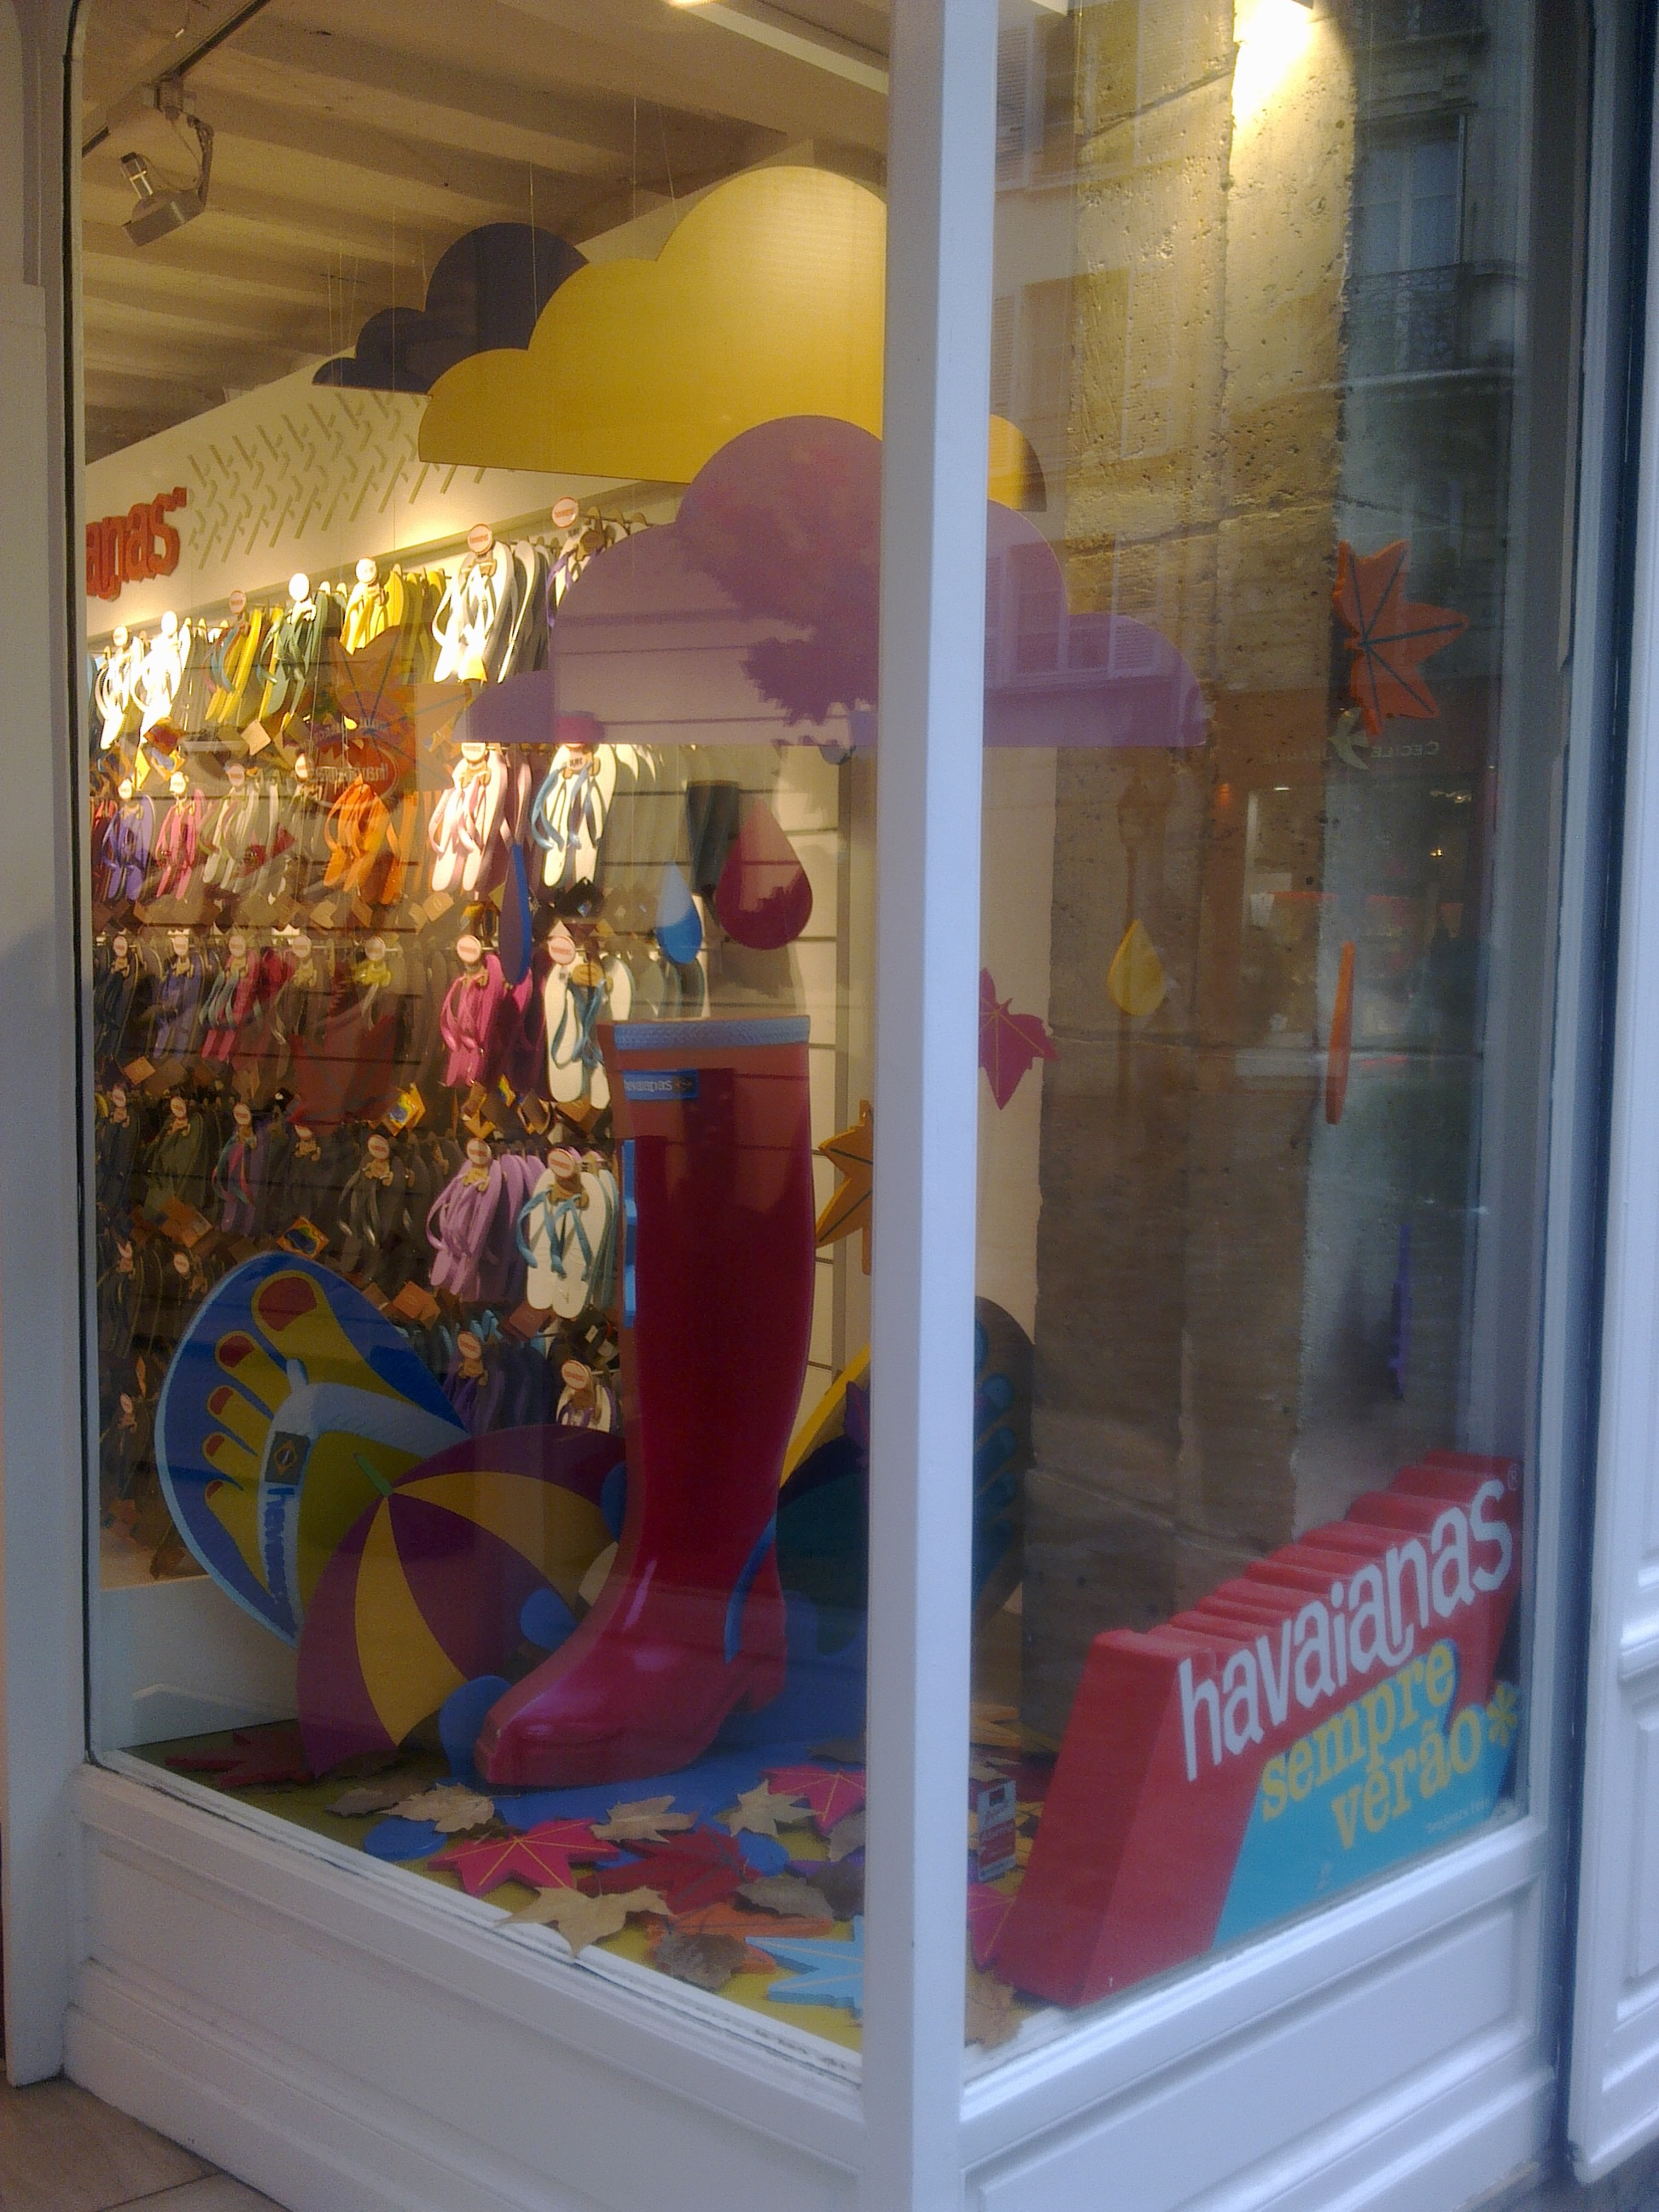 IC Escaparate Havaianas Paris (16).jpg